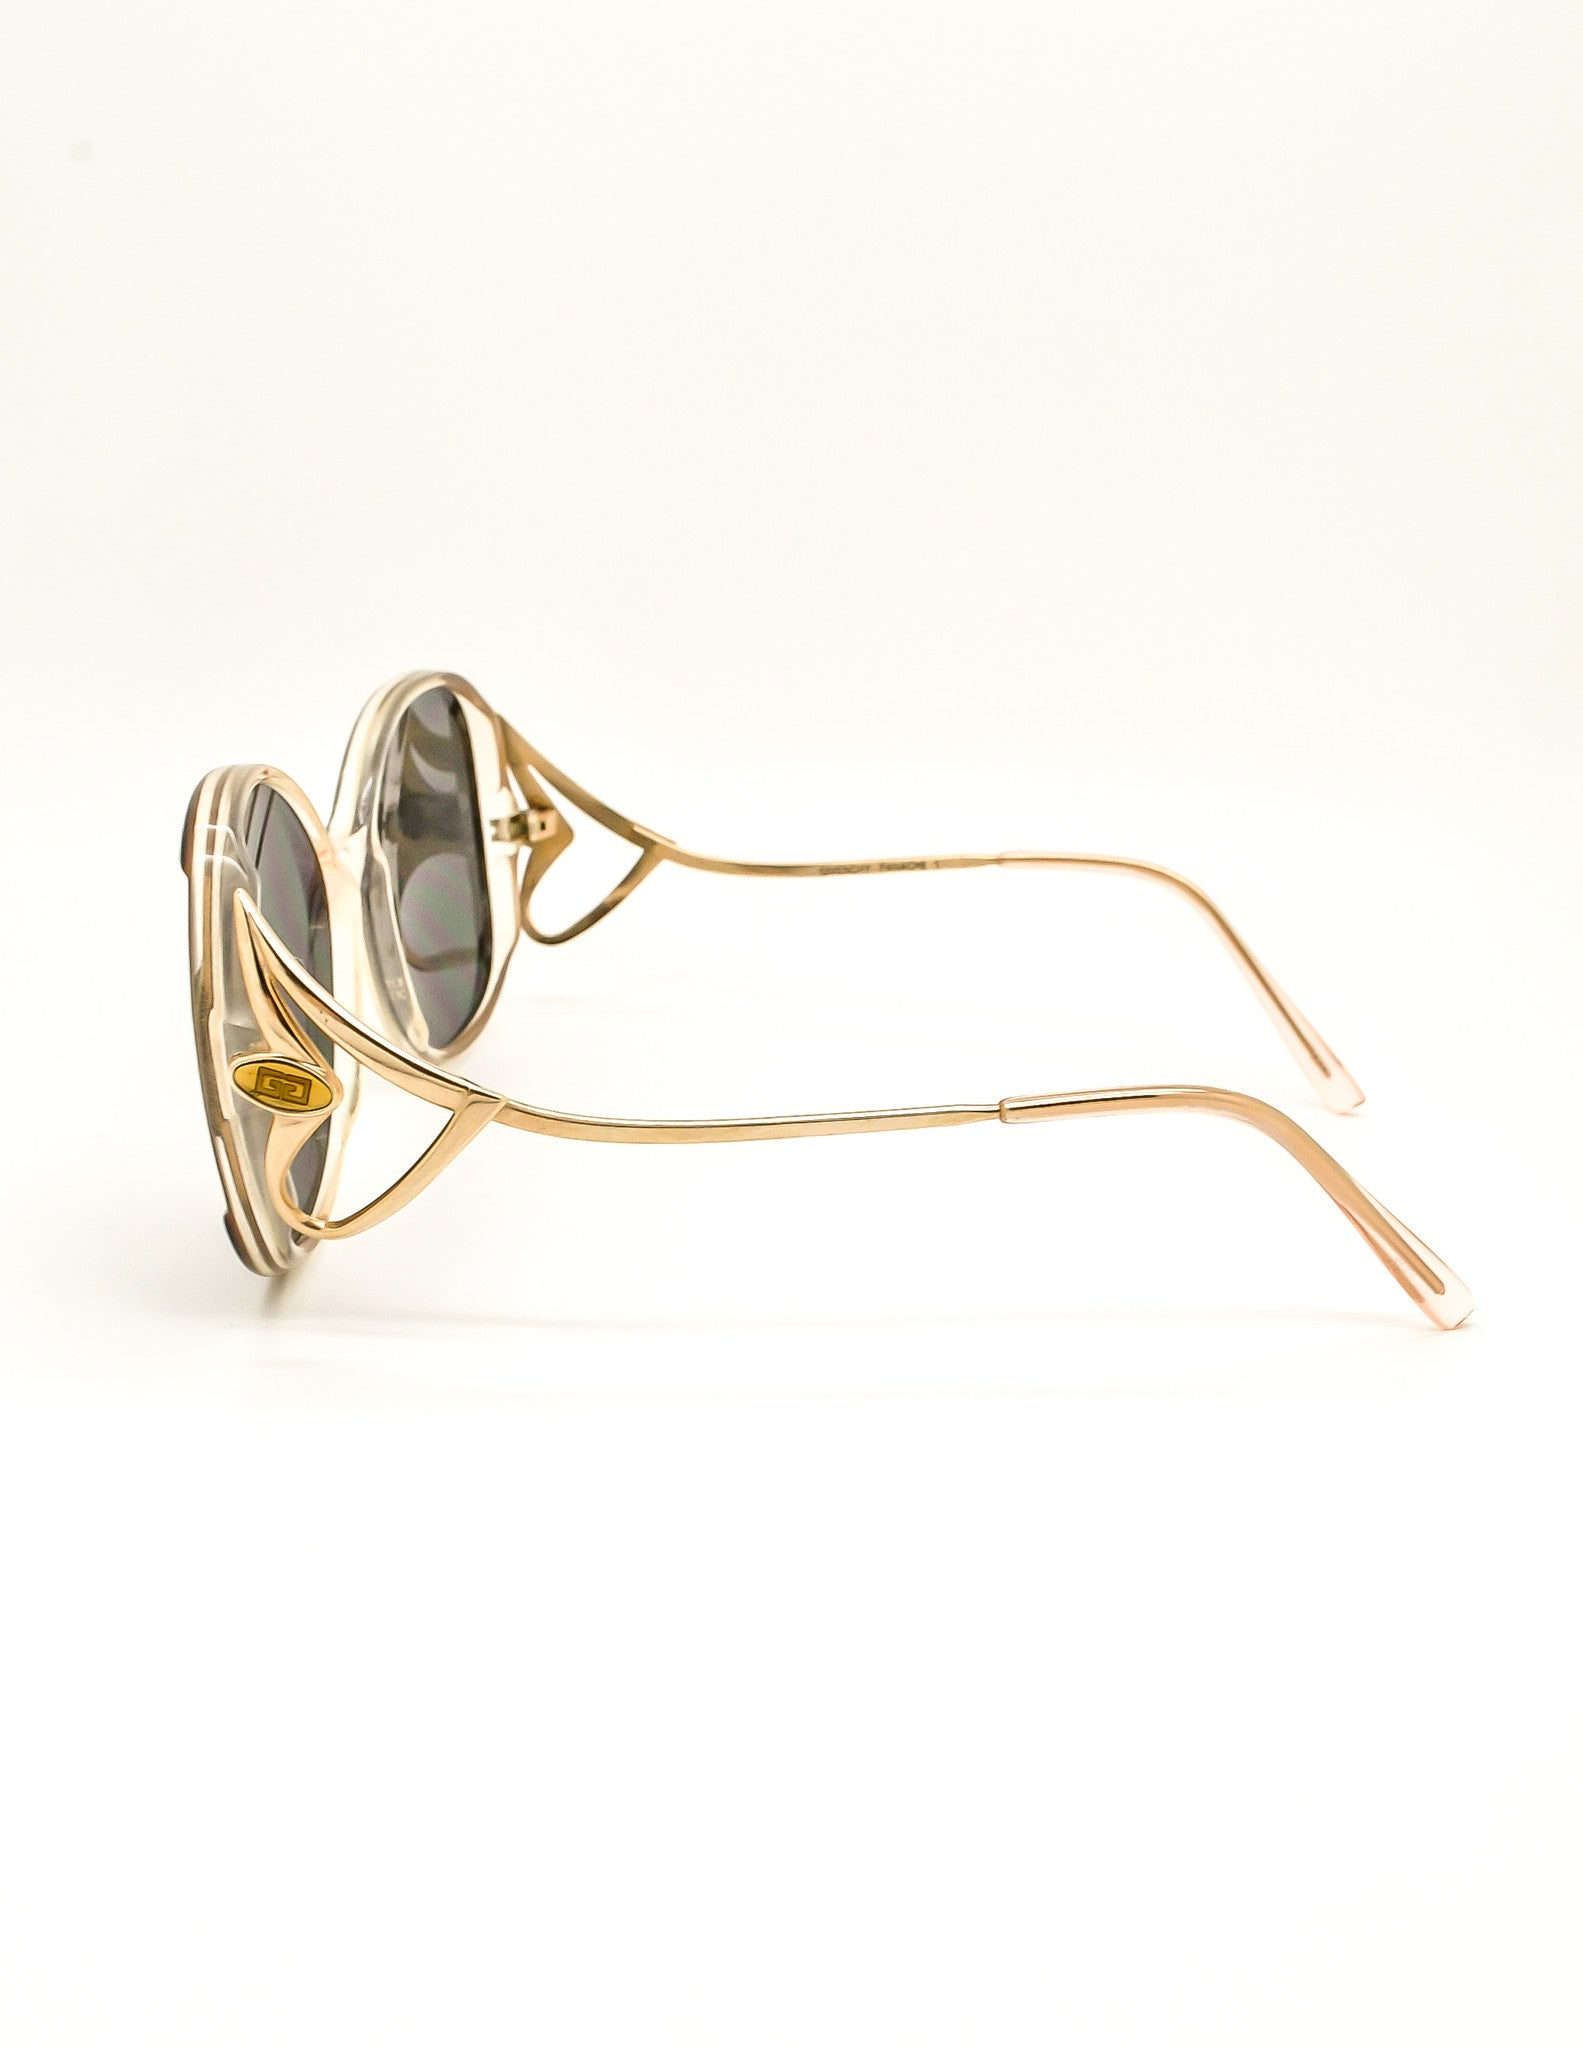 6aa469387302 Givenchy Vintage 1970s Brown & Gold 'Panache' Sunglasses - Amarcord Vintage  ...